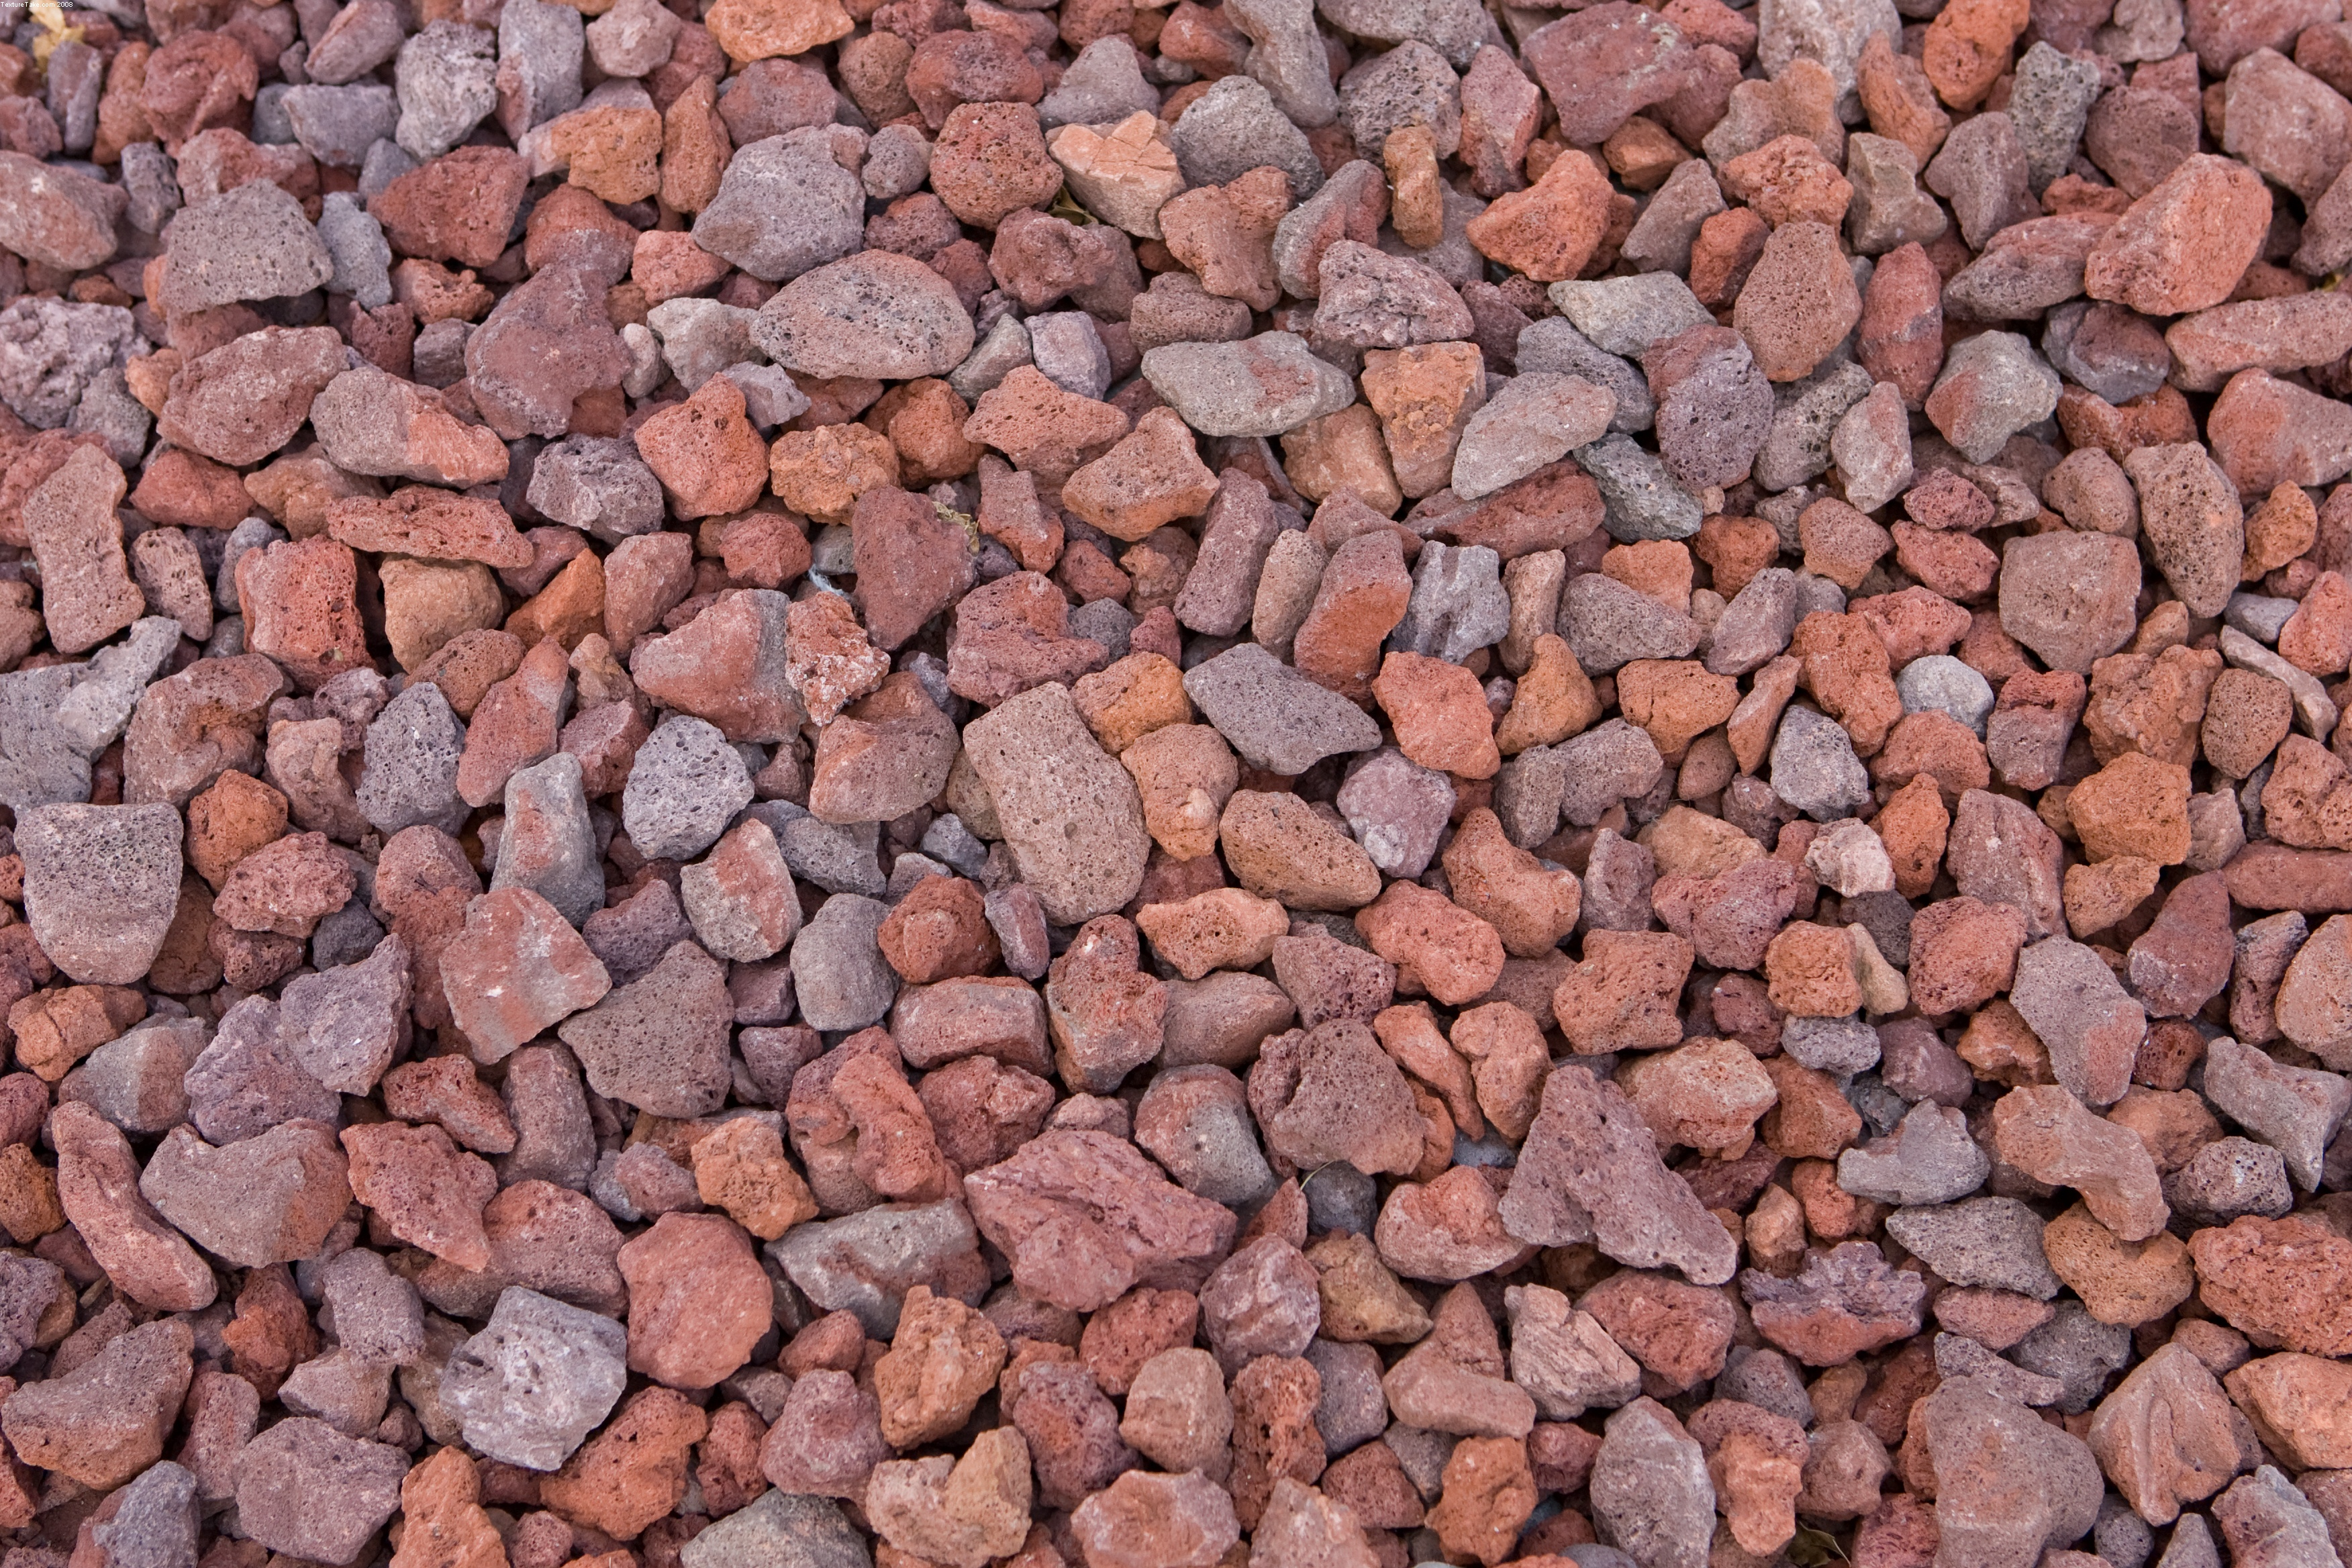 Lava mulch black lava rock mulch images lava mulch for Small red rocks for landscaping